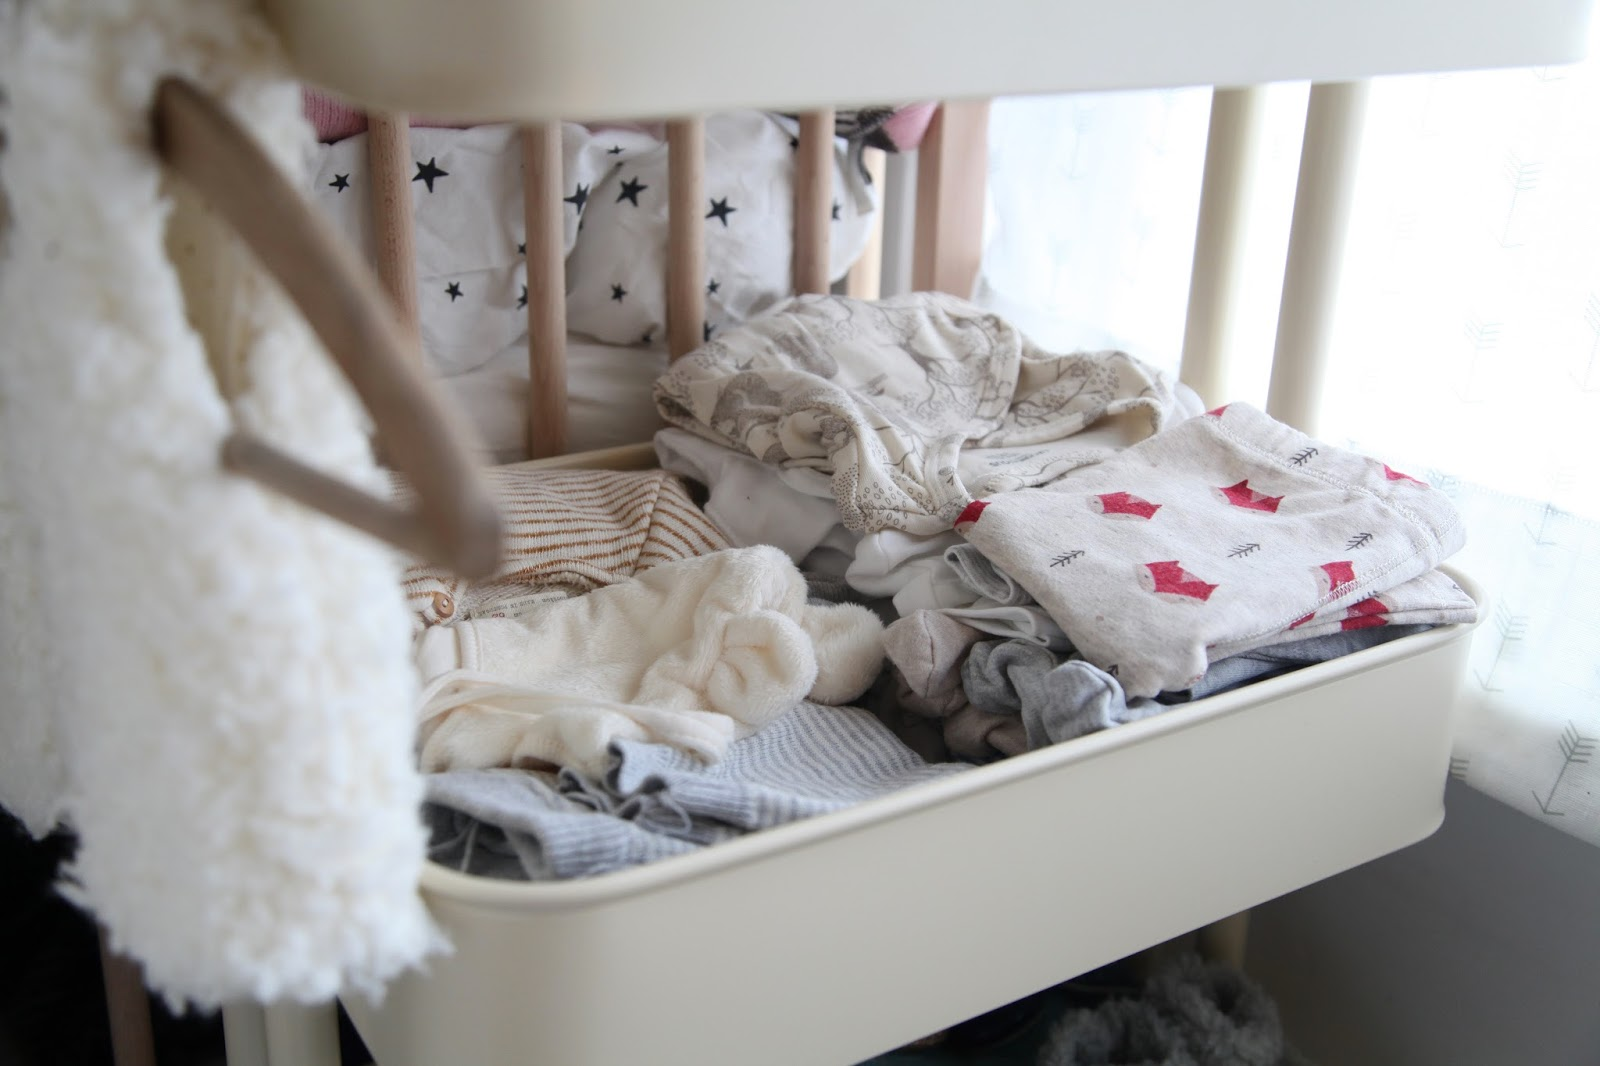 We Are Really Pushed For E In Our Bedroom So I M Using This Ikea Trolly All The Baby Stuff Clothes And Ny Changing Things On Top Tier